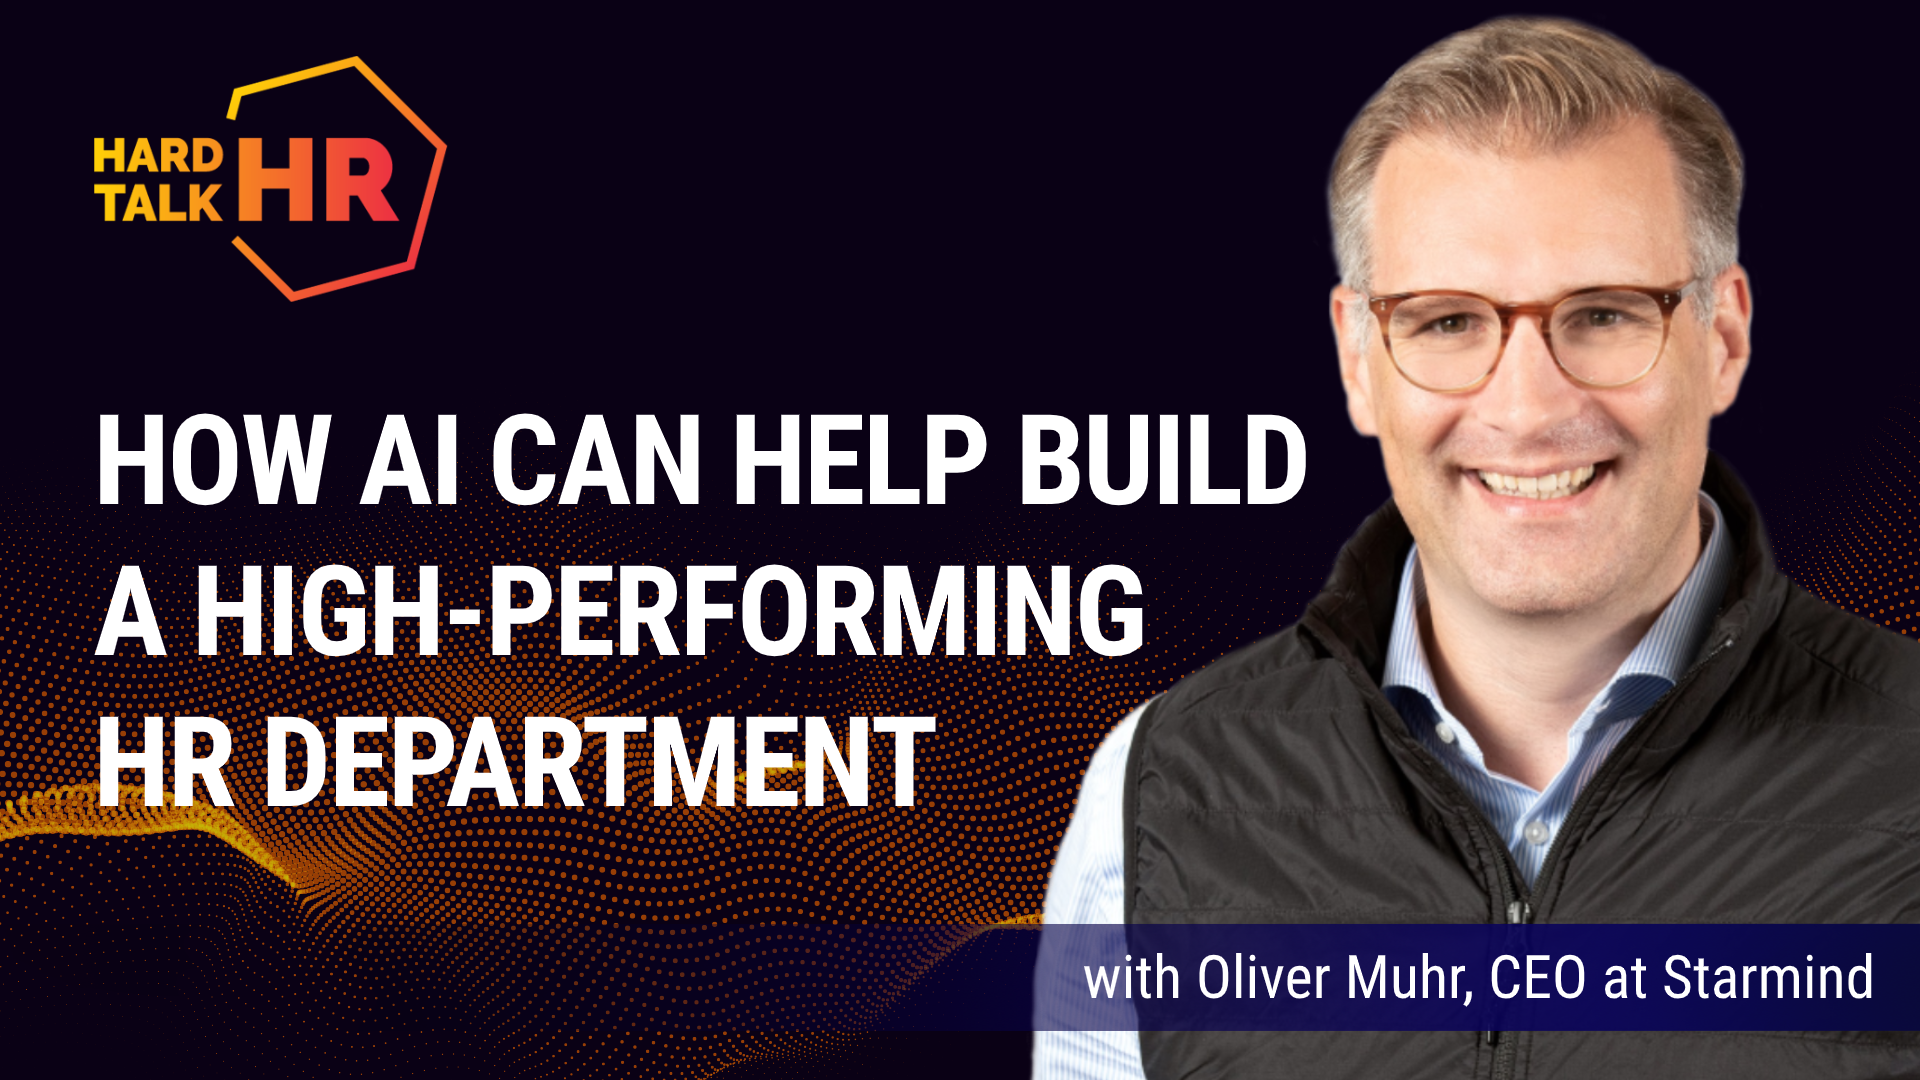 Hard Talk HR- How AI Can Help Build a High-Performing HR Department _ Oliver Muhr